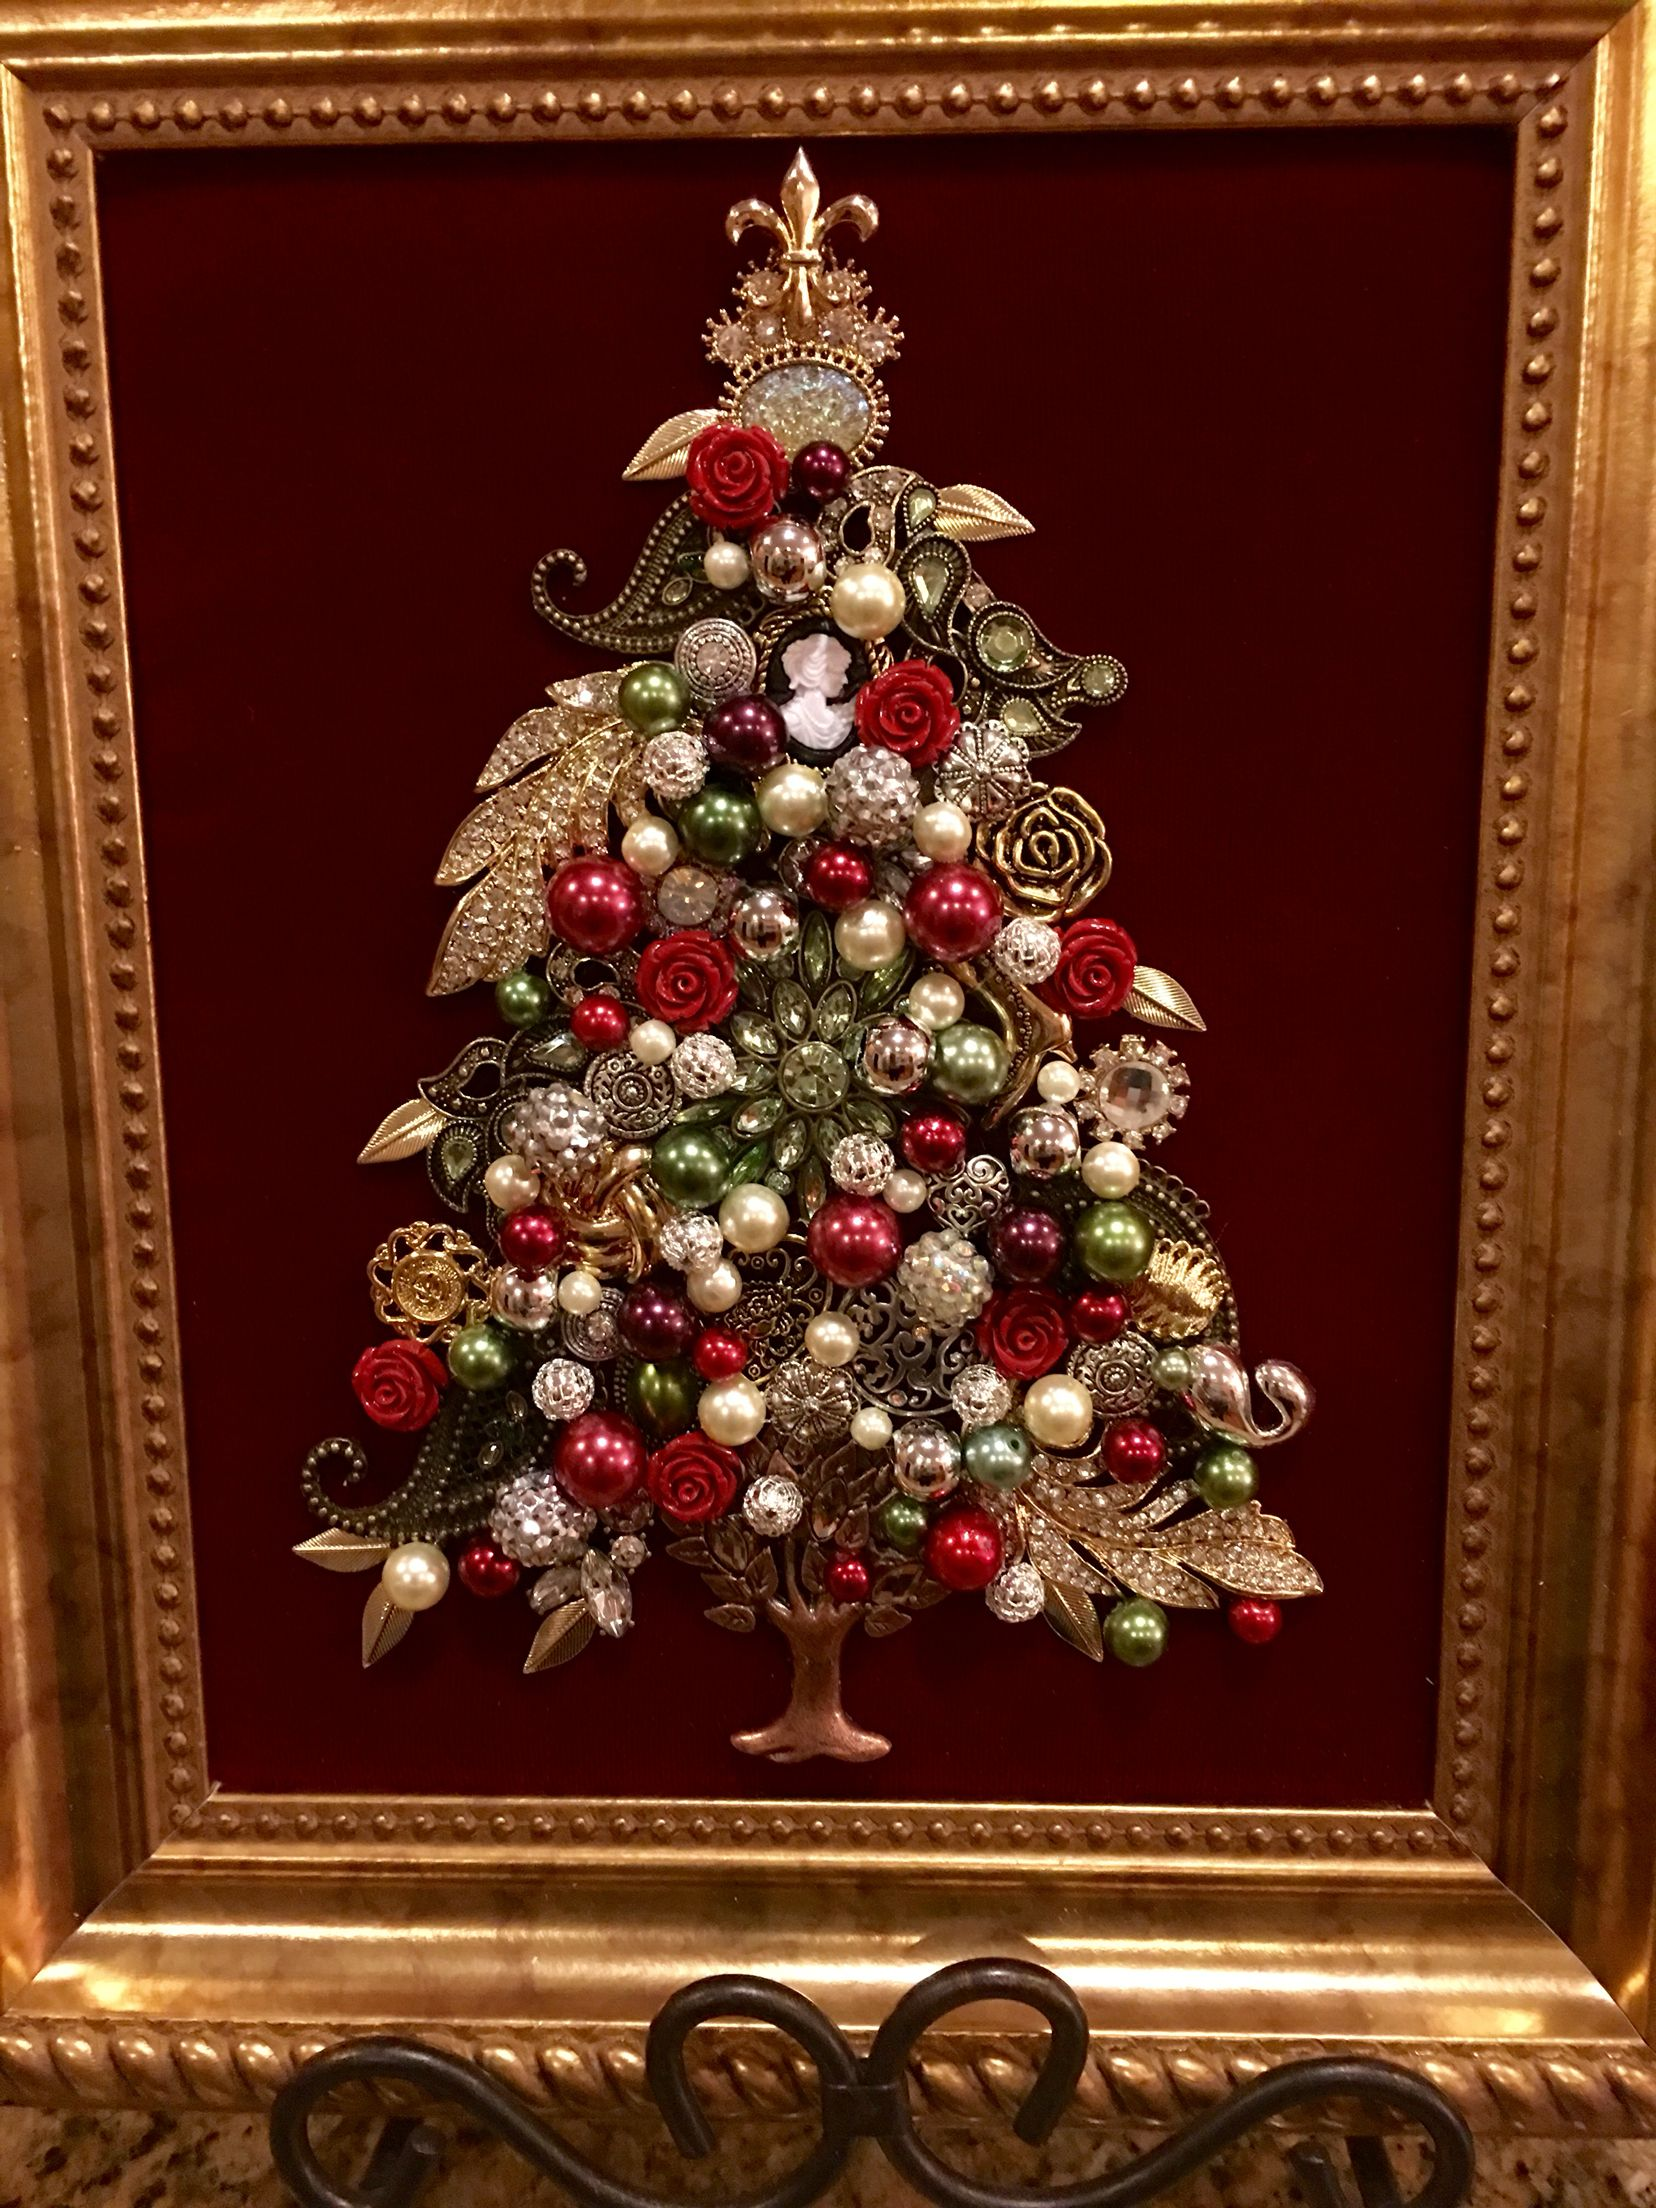 8x10 Jewelry Christmas Tree By Beth Turchi 2016 Christmas